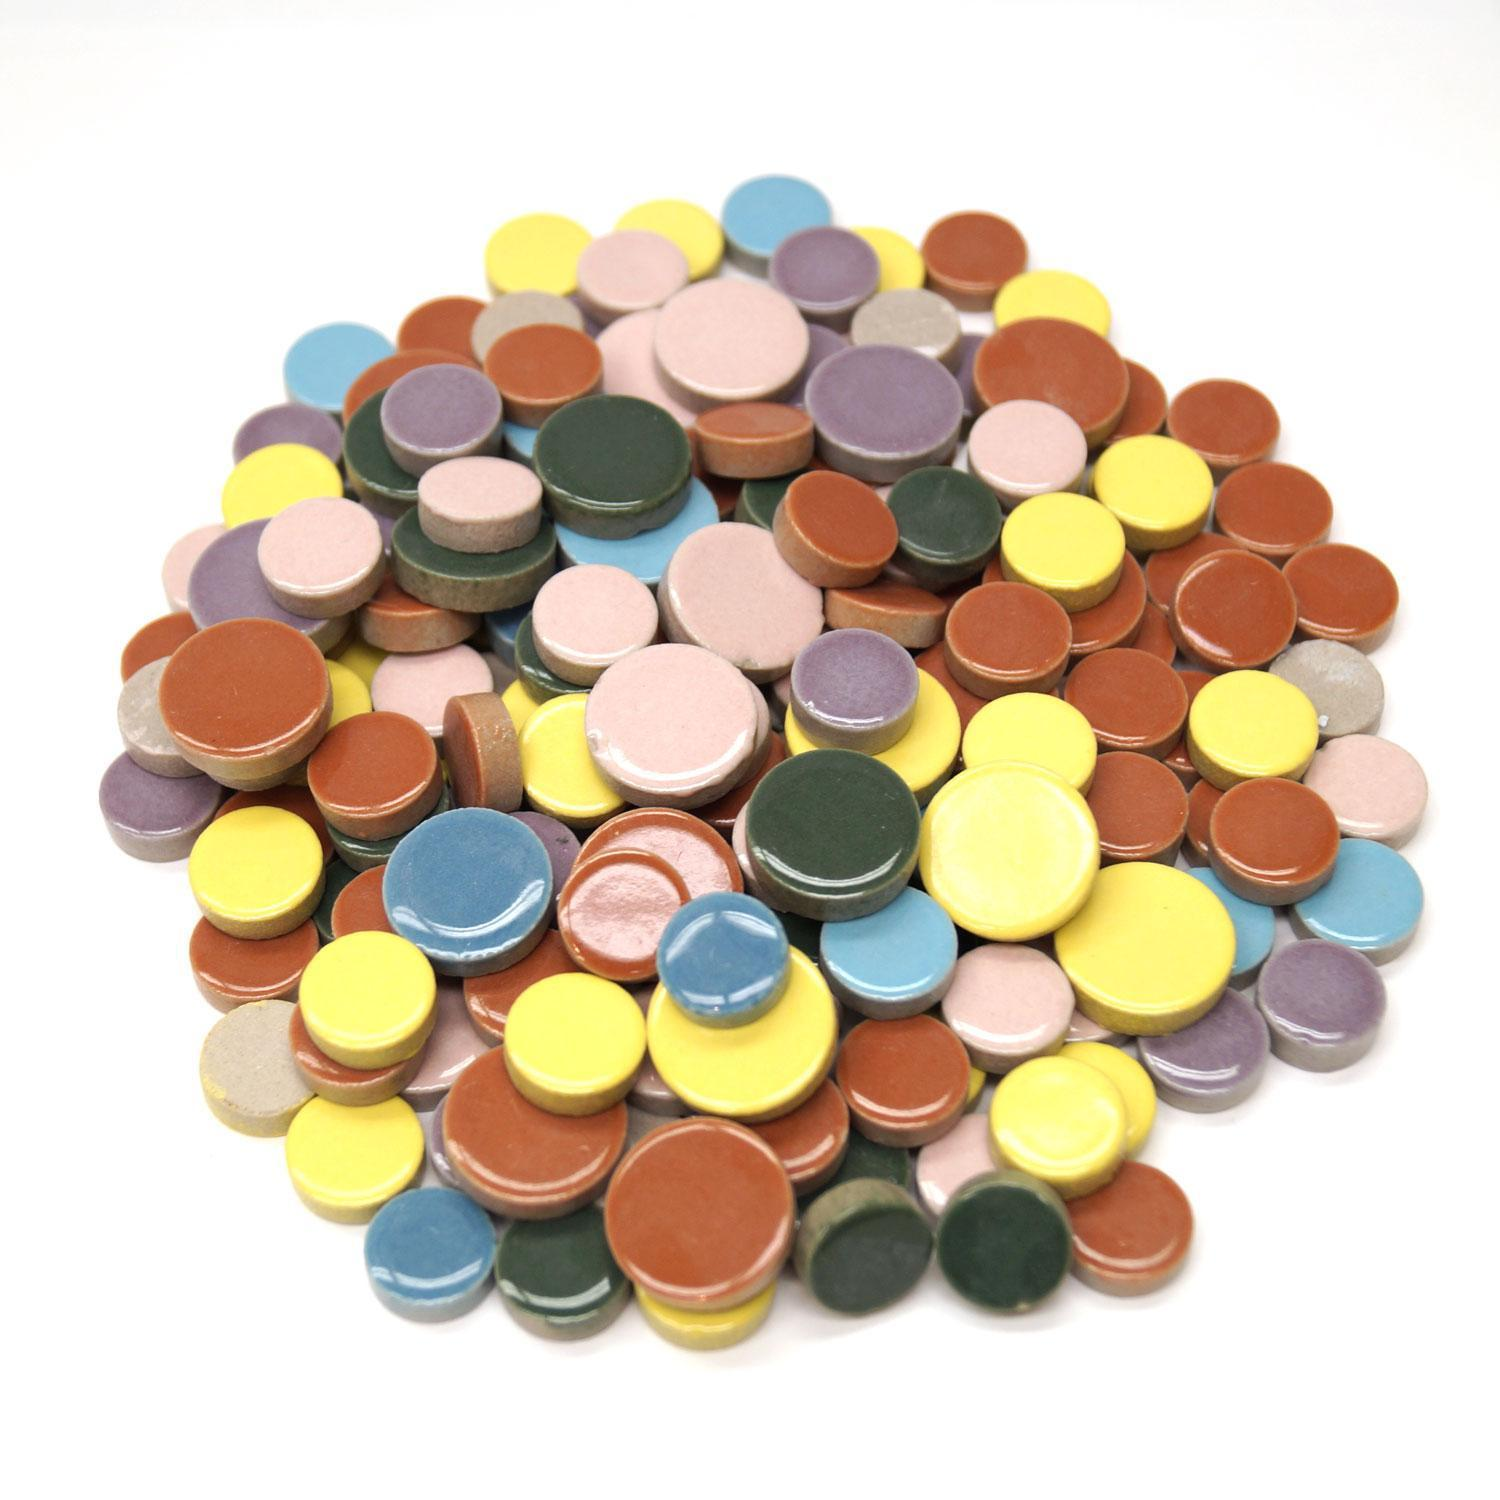 Assorted Ceramic Round Tiles - 1 Lb